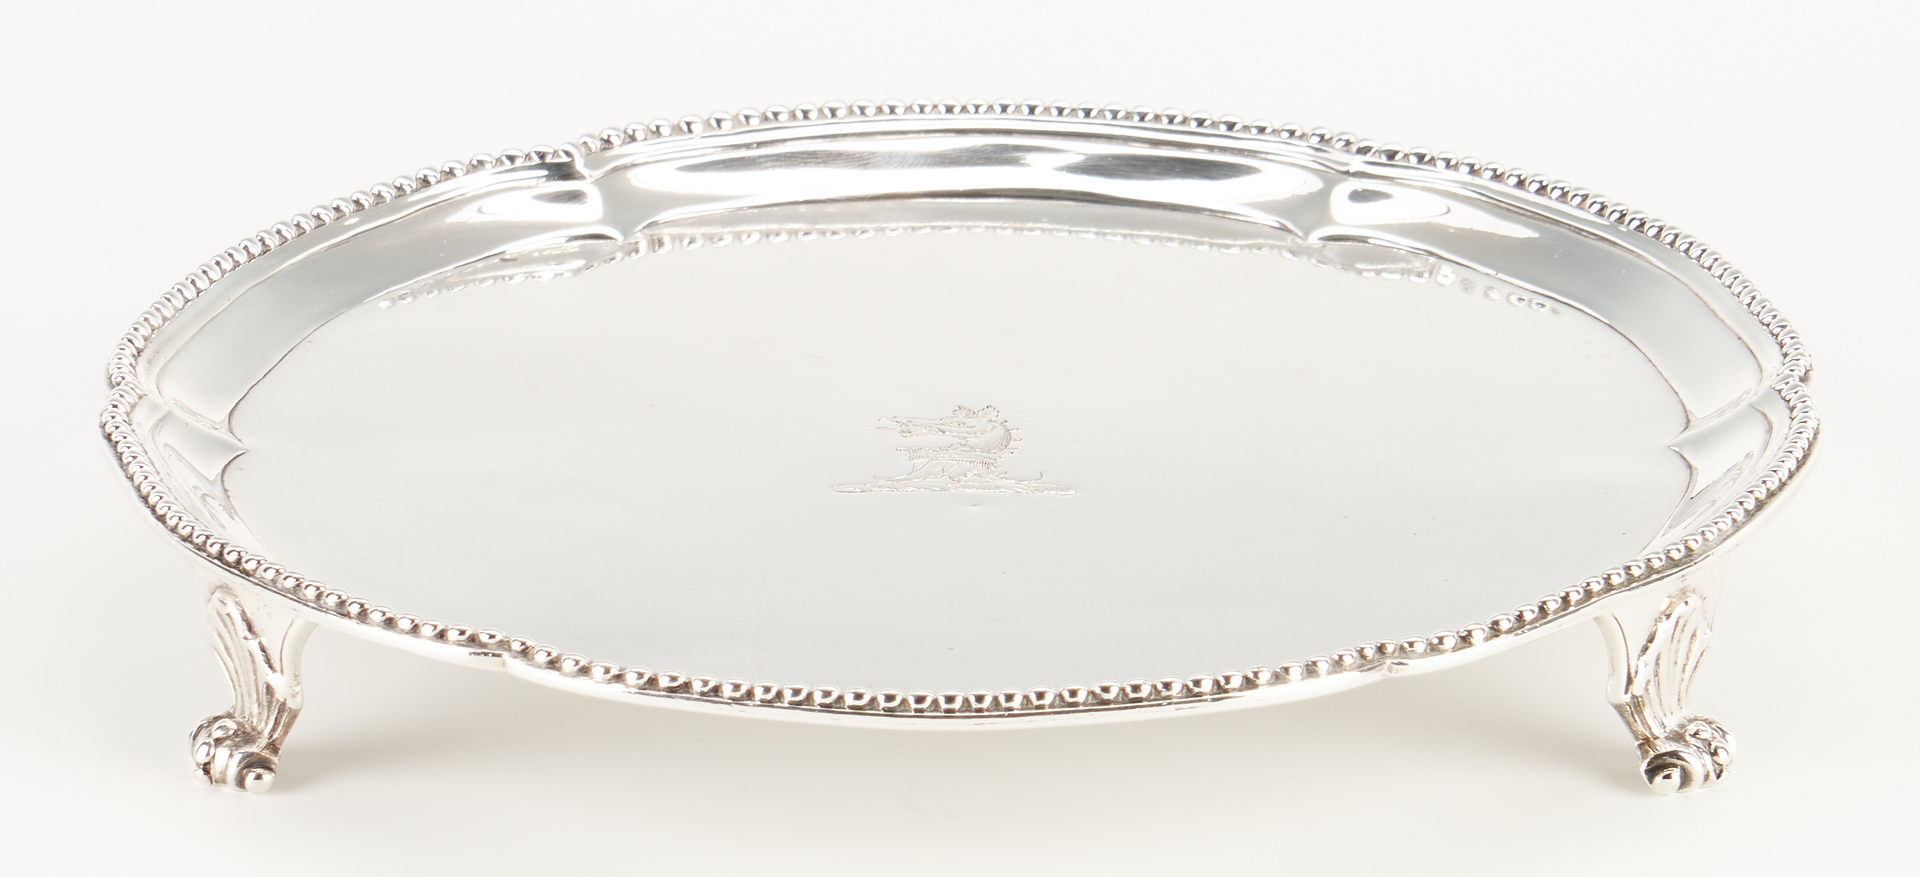 Lot 107: 18th C. English Sterling Salver, Crouch & Hannam